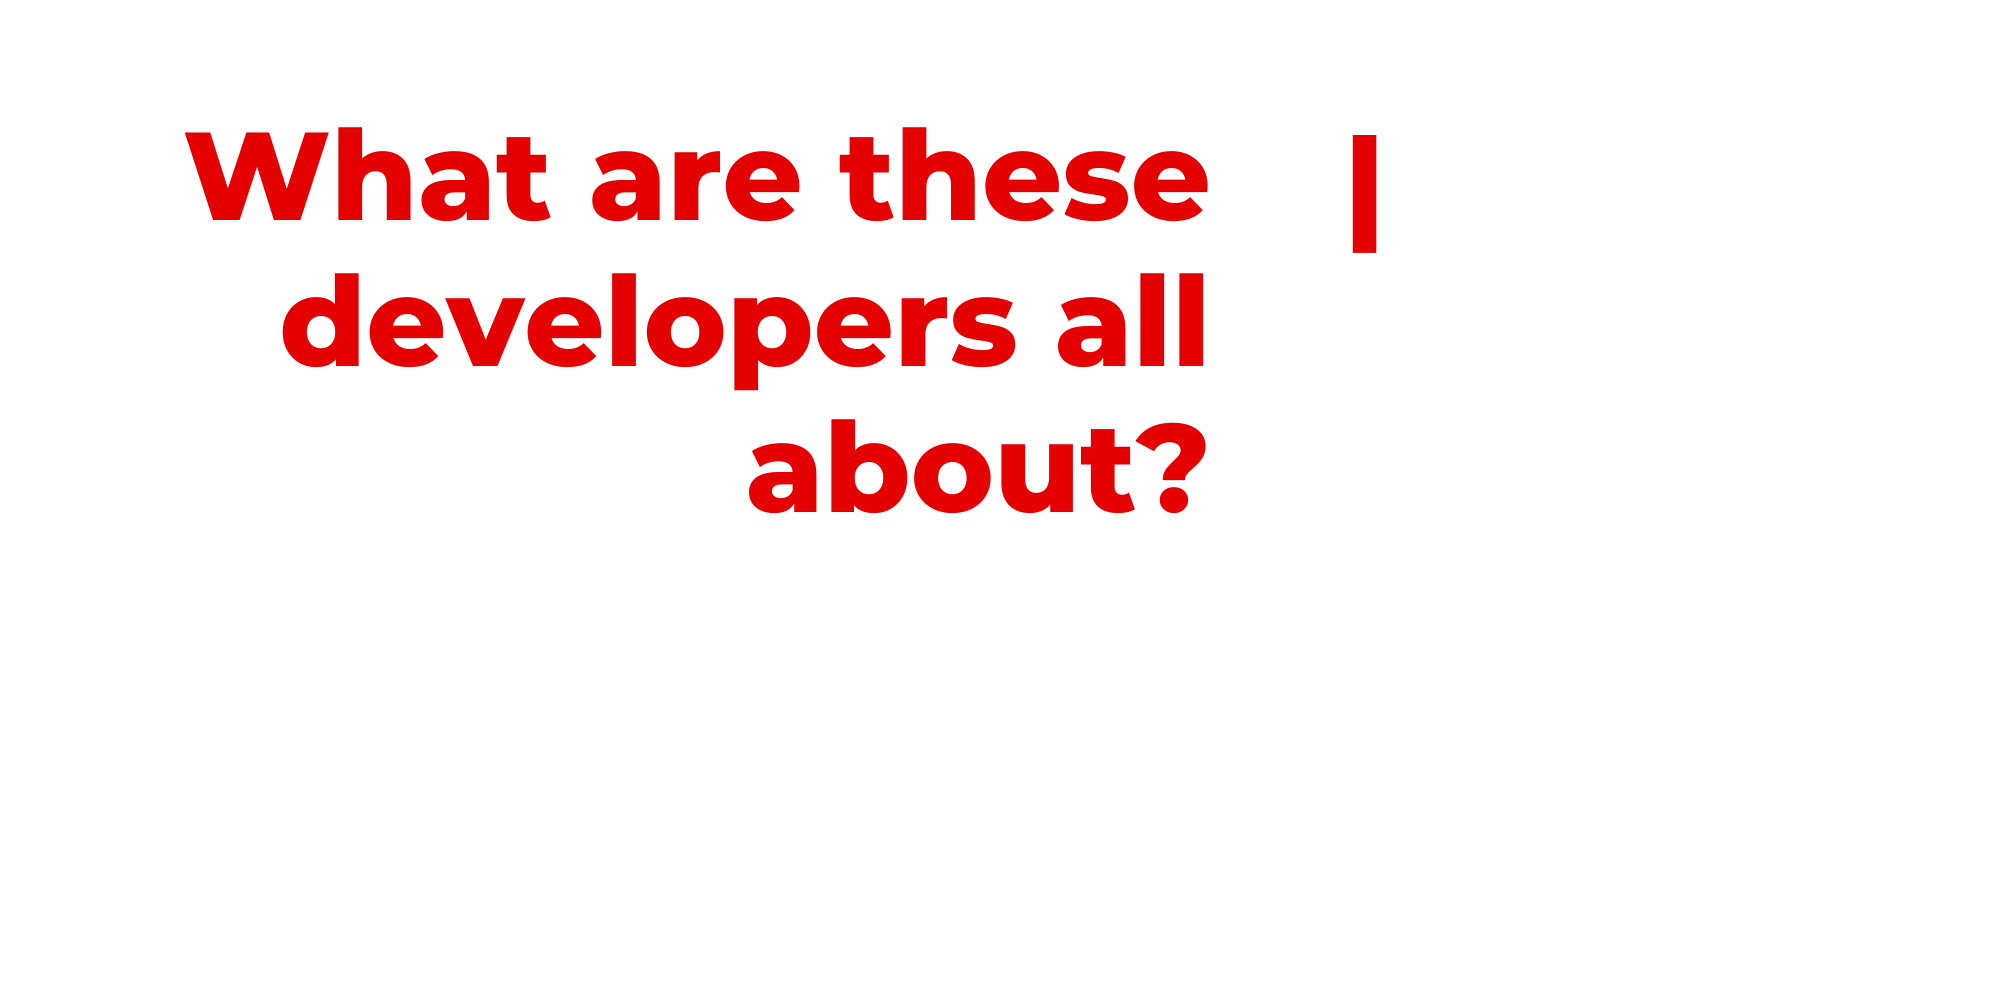 what are these developers all about